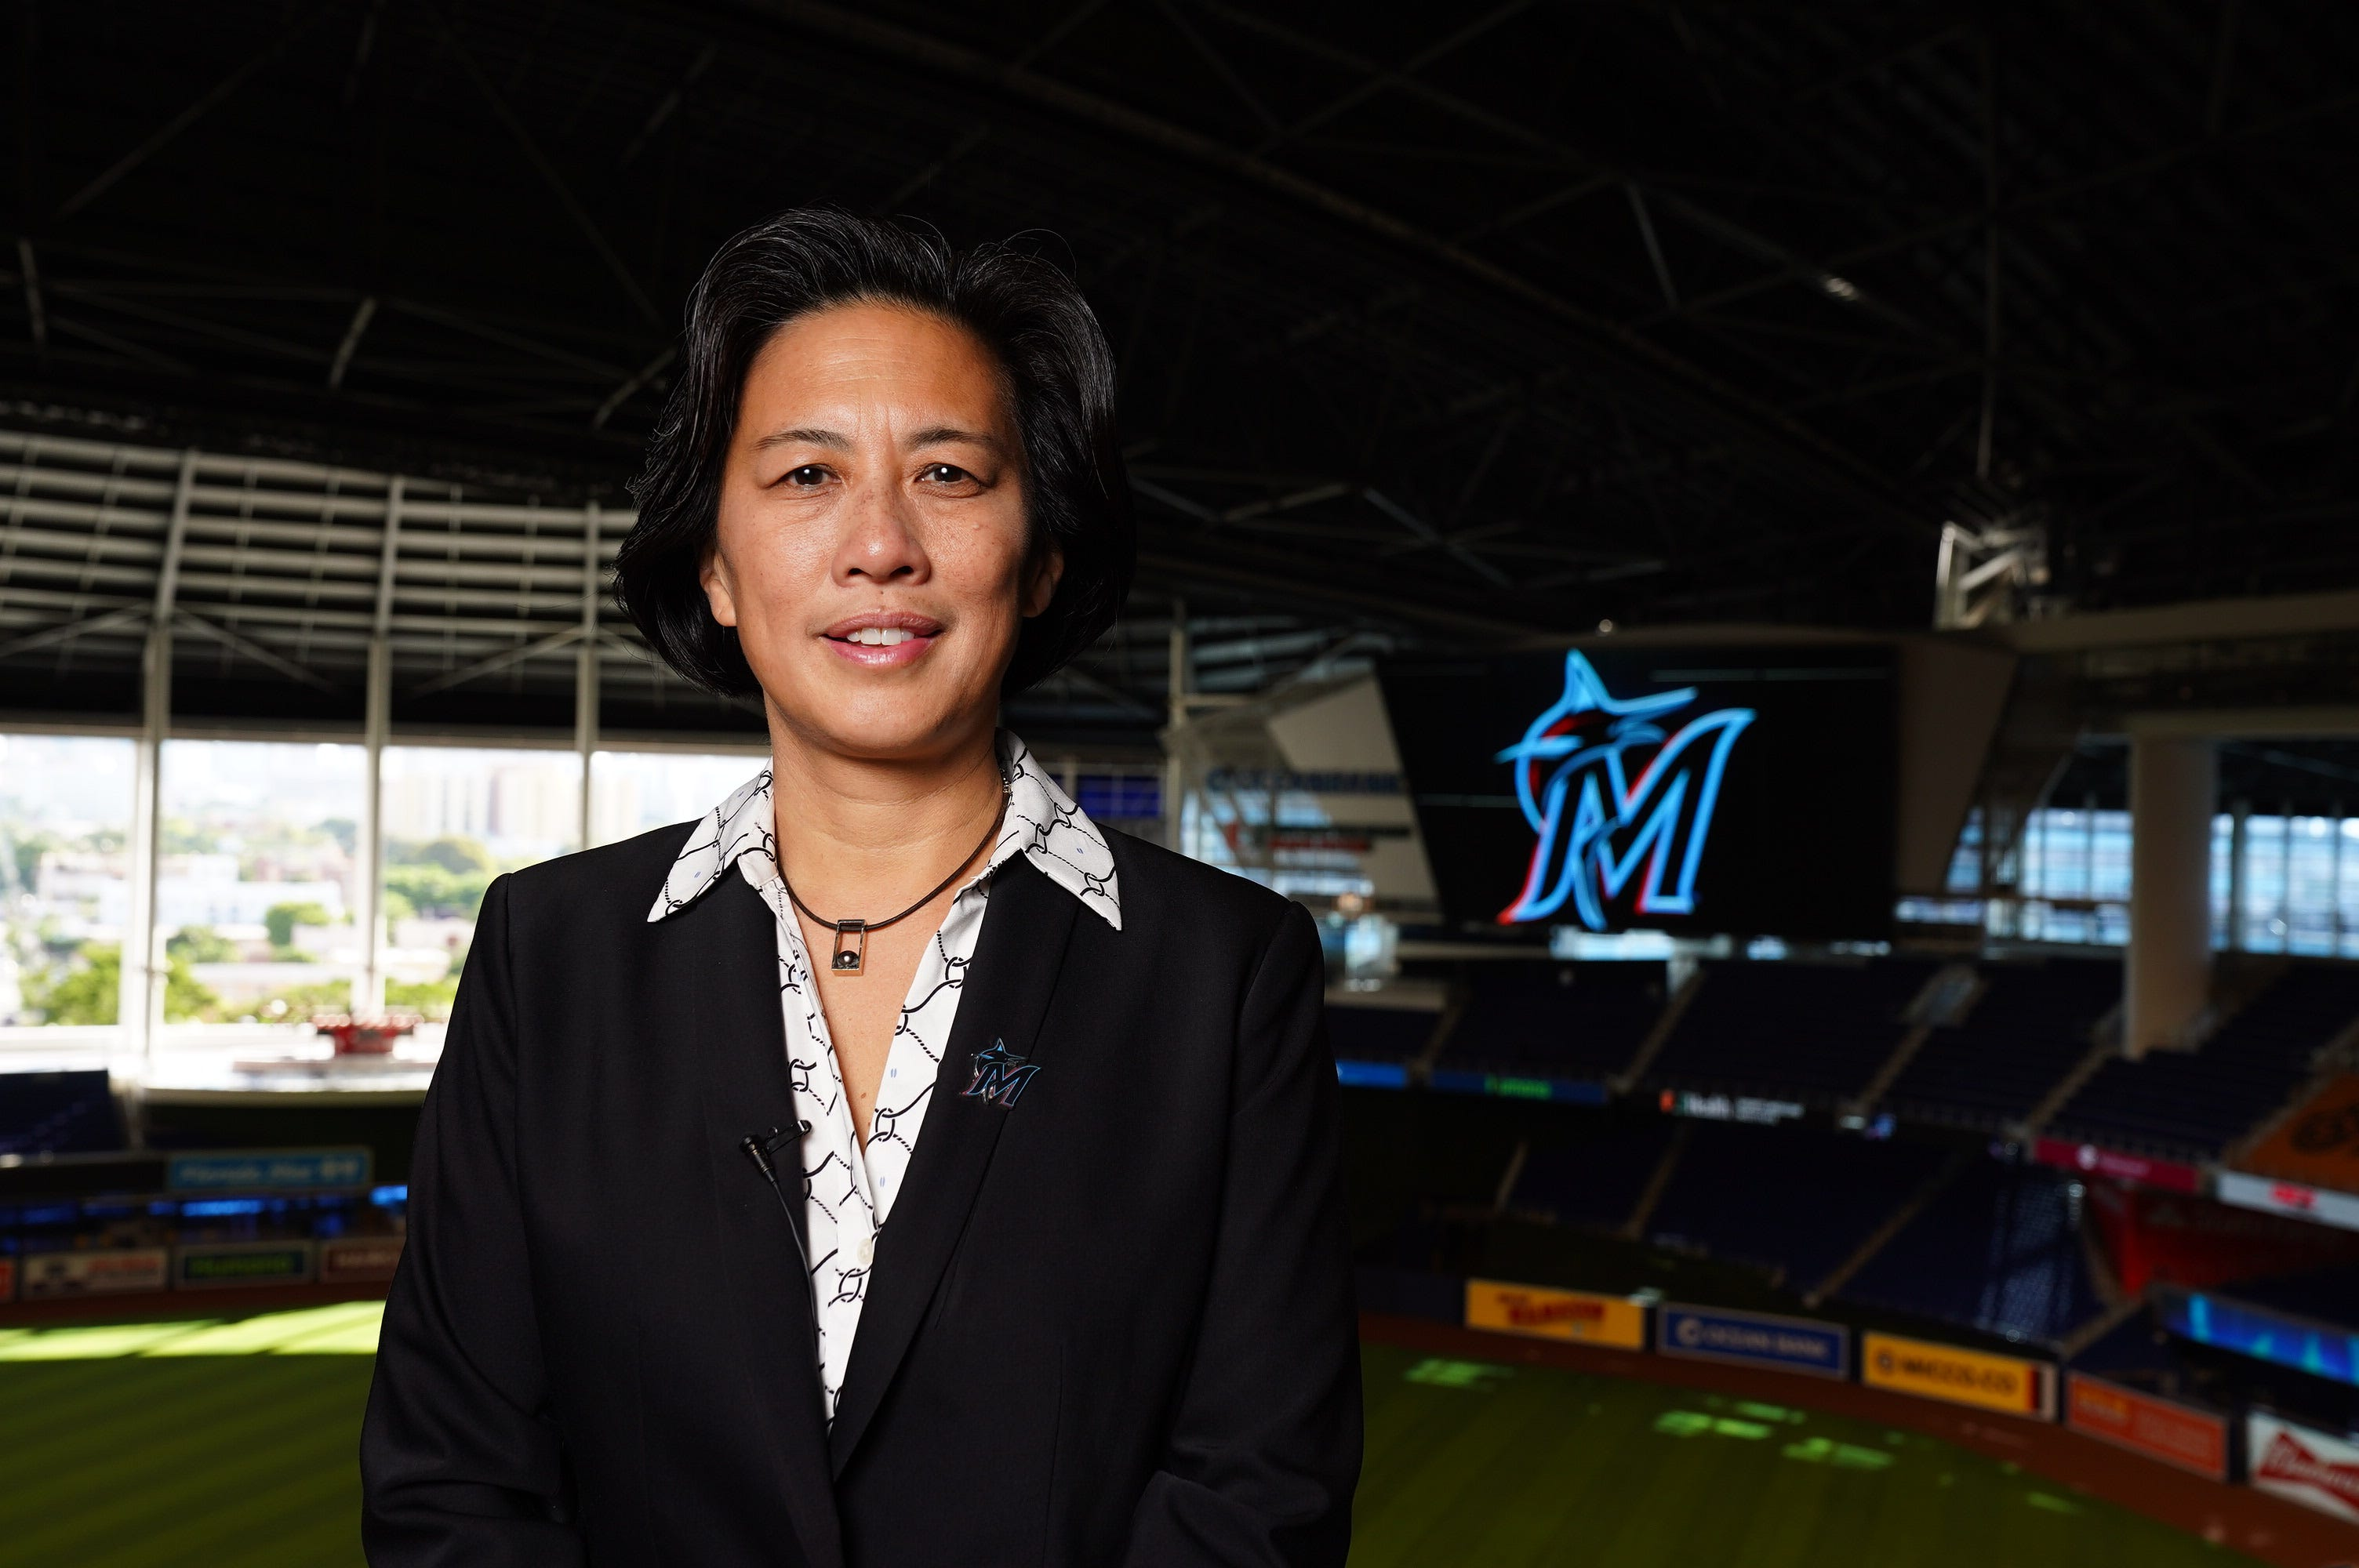 'It means the world to me': Marlins general manager Kim Ng set to inspire new generation of girls